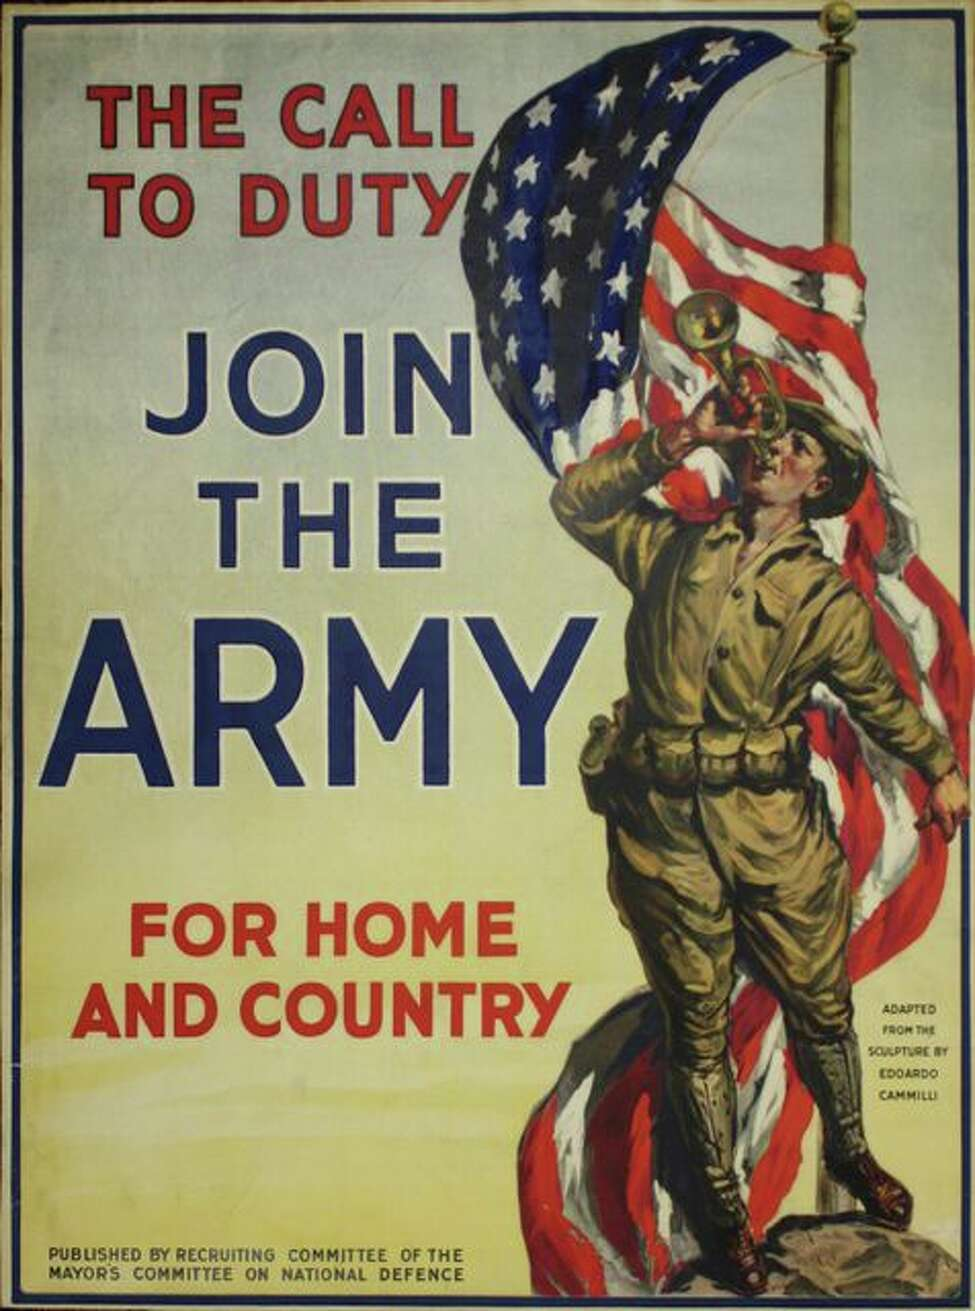 Poster was adapted from the sculpture by Edoardo Cammilli and issued by the Recruiting Committee of the Mayor's Committee on National Defense.